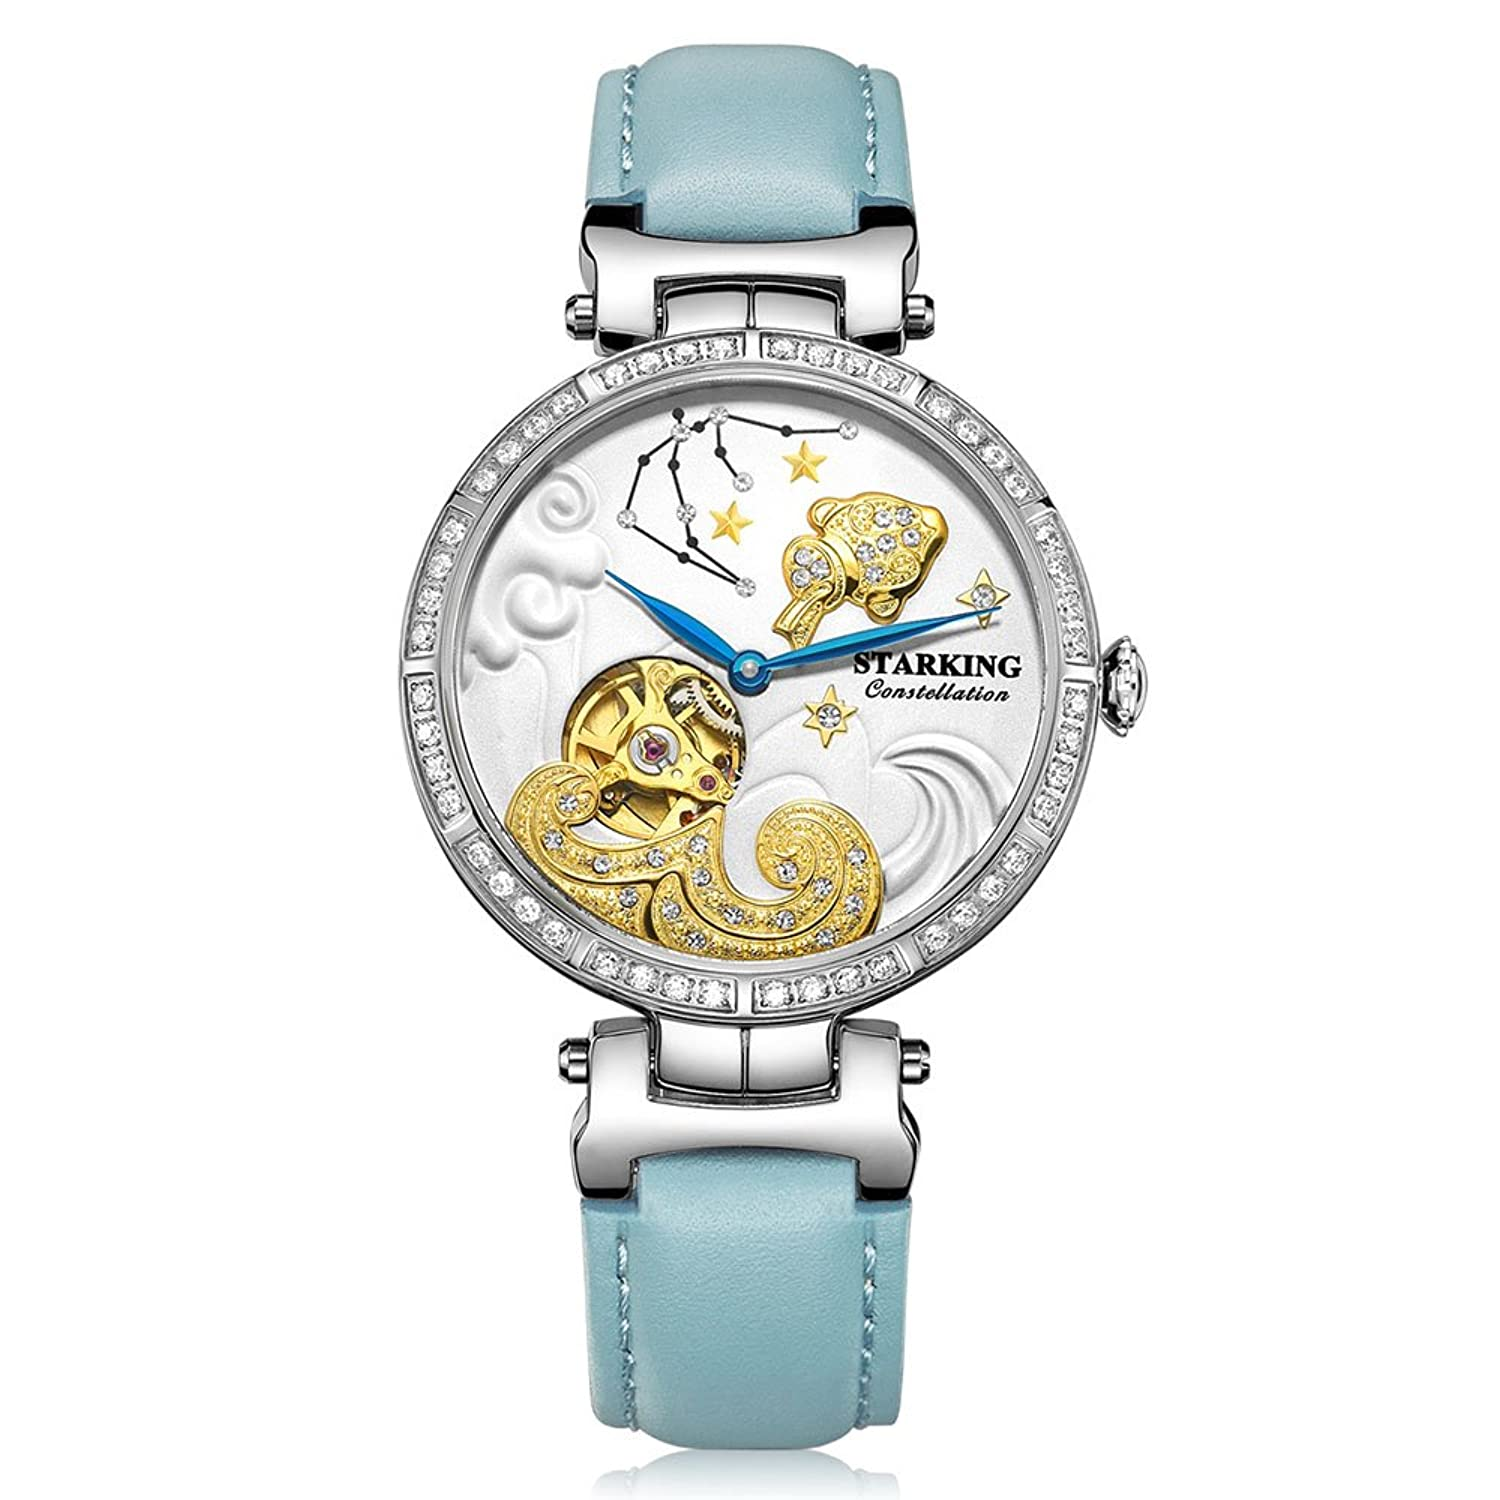 Starking Damen al0201sl71 Aquarius Skelett Automatische Kleid Armbanduhr Romantische Sternbilder Collection